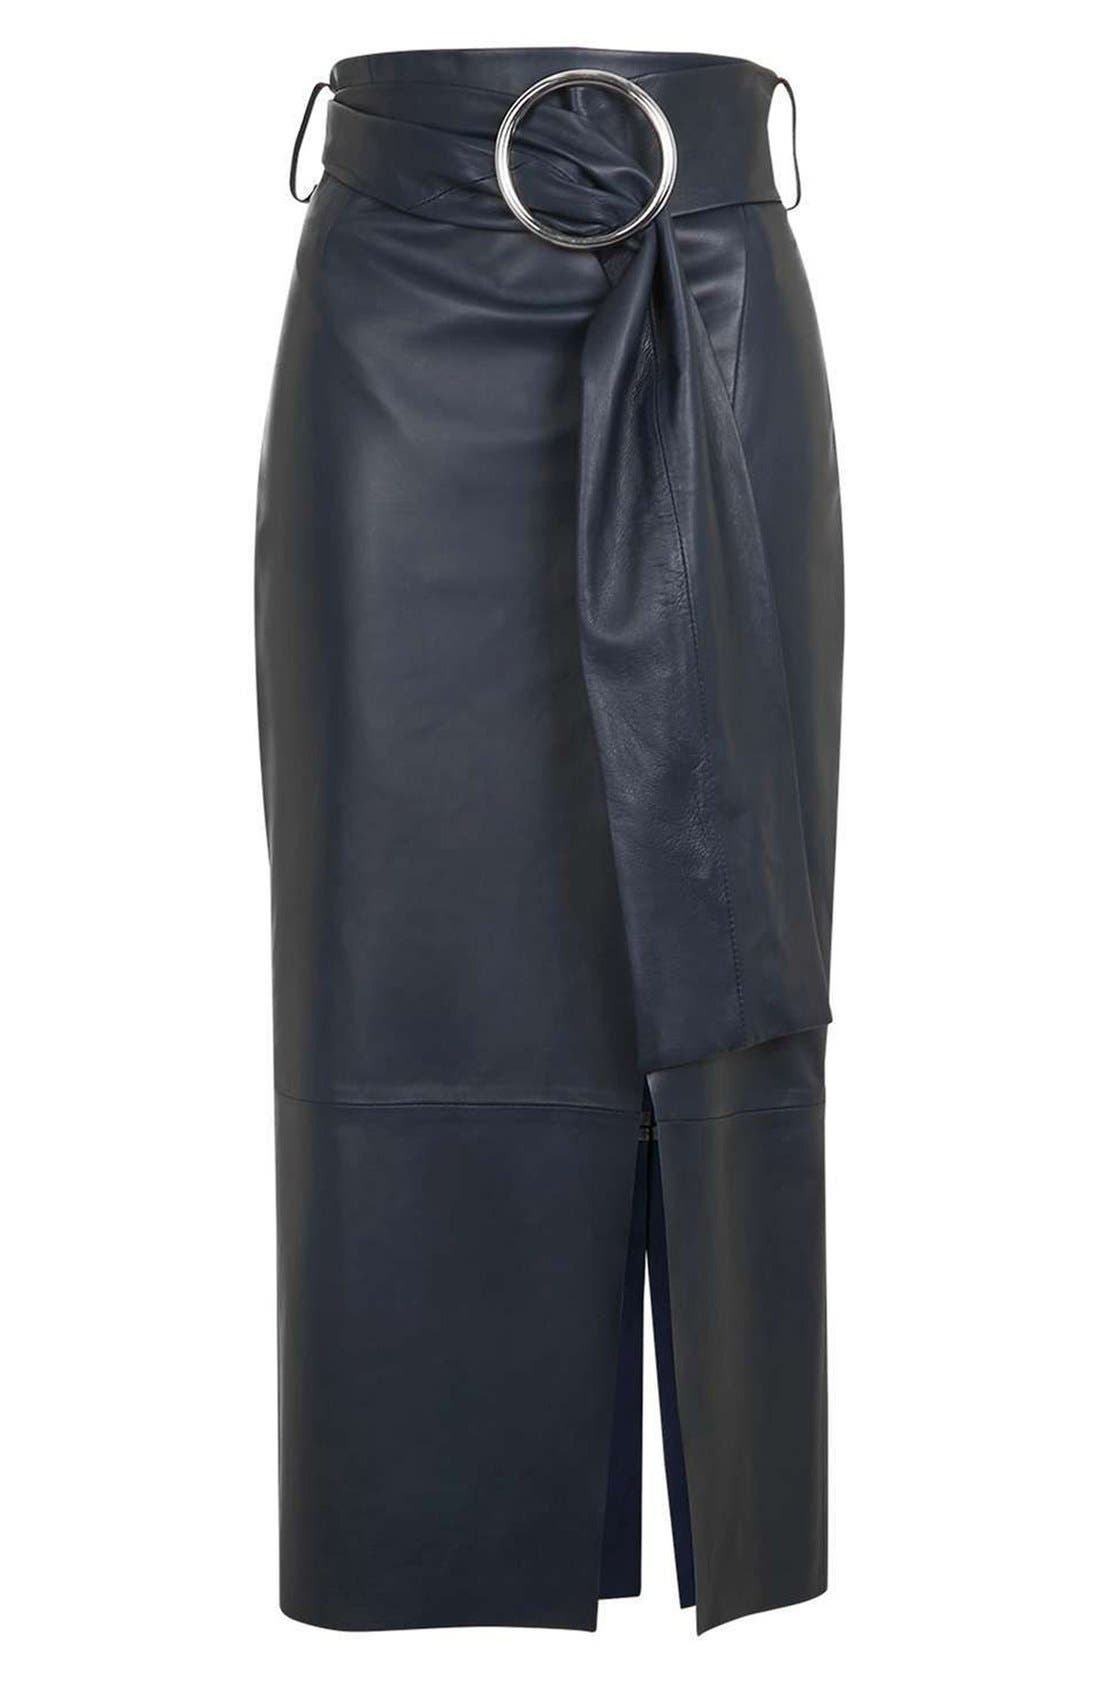 Main Image - Topshop Boutique Belted Leather Skirt